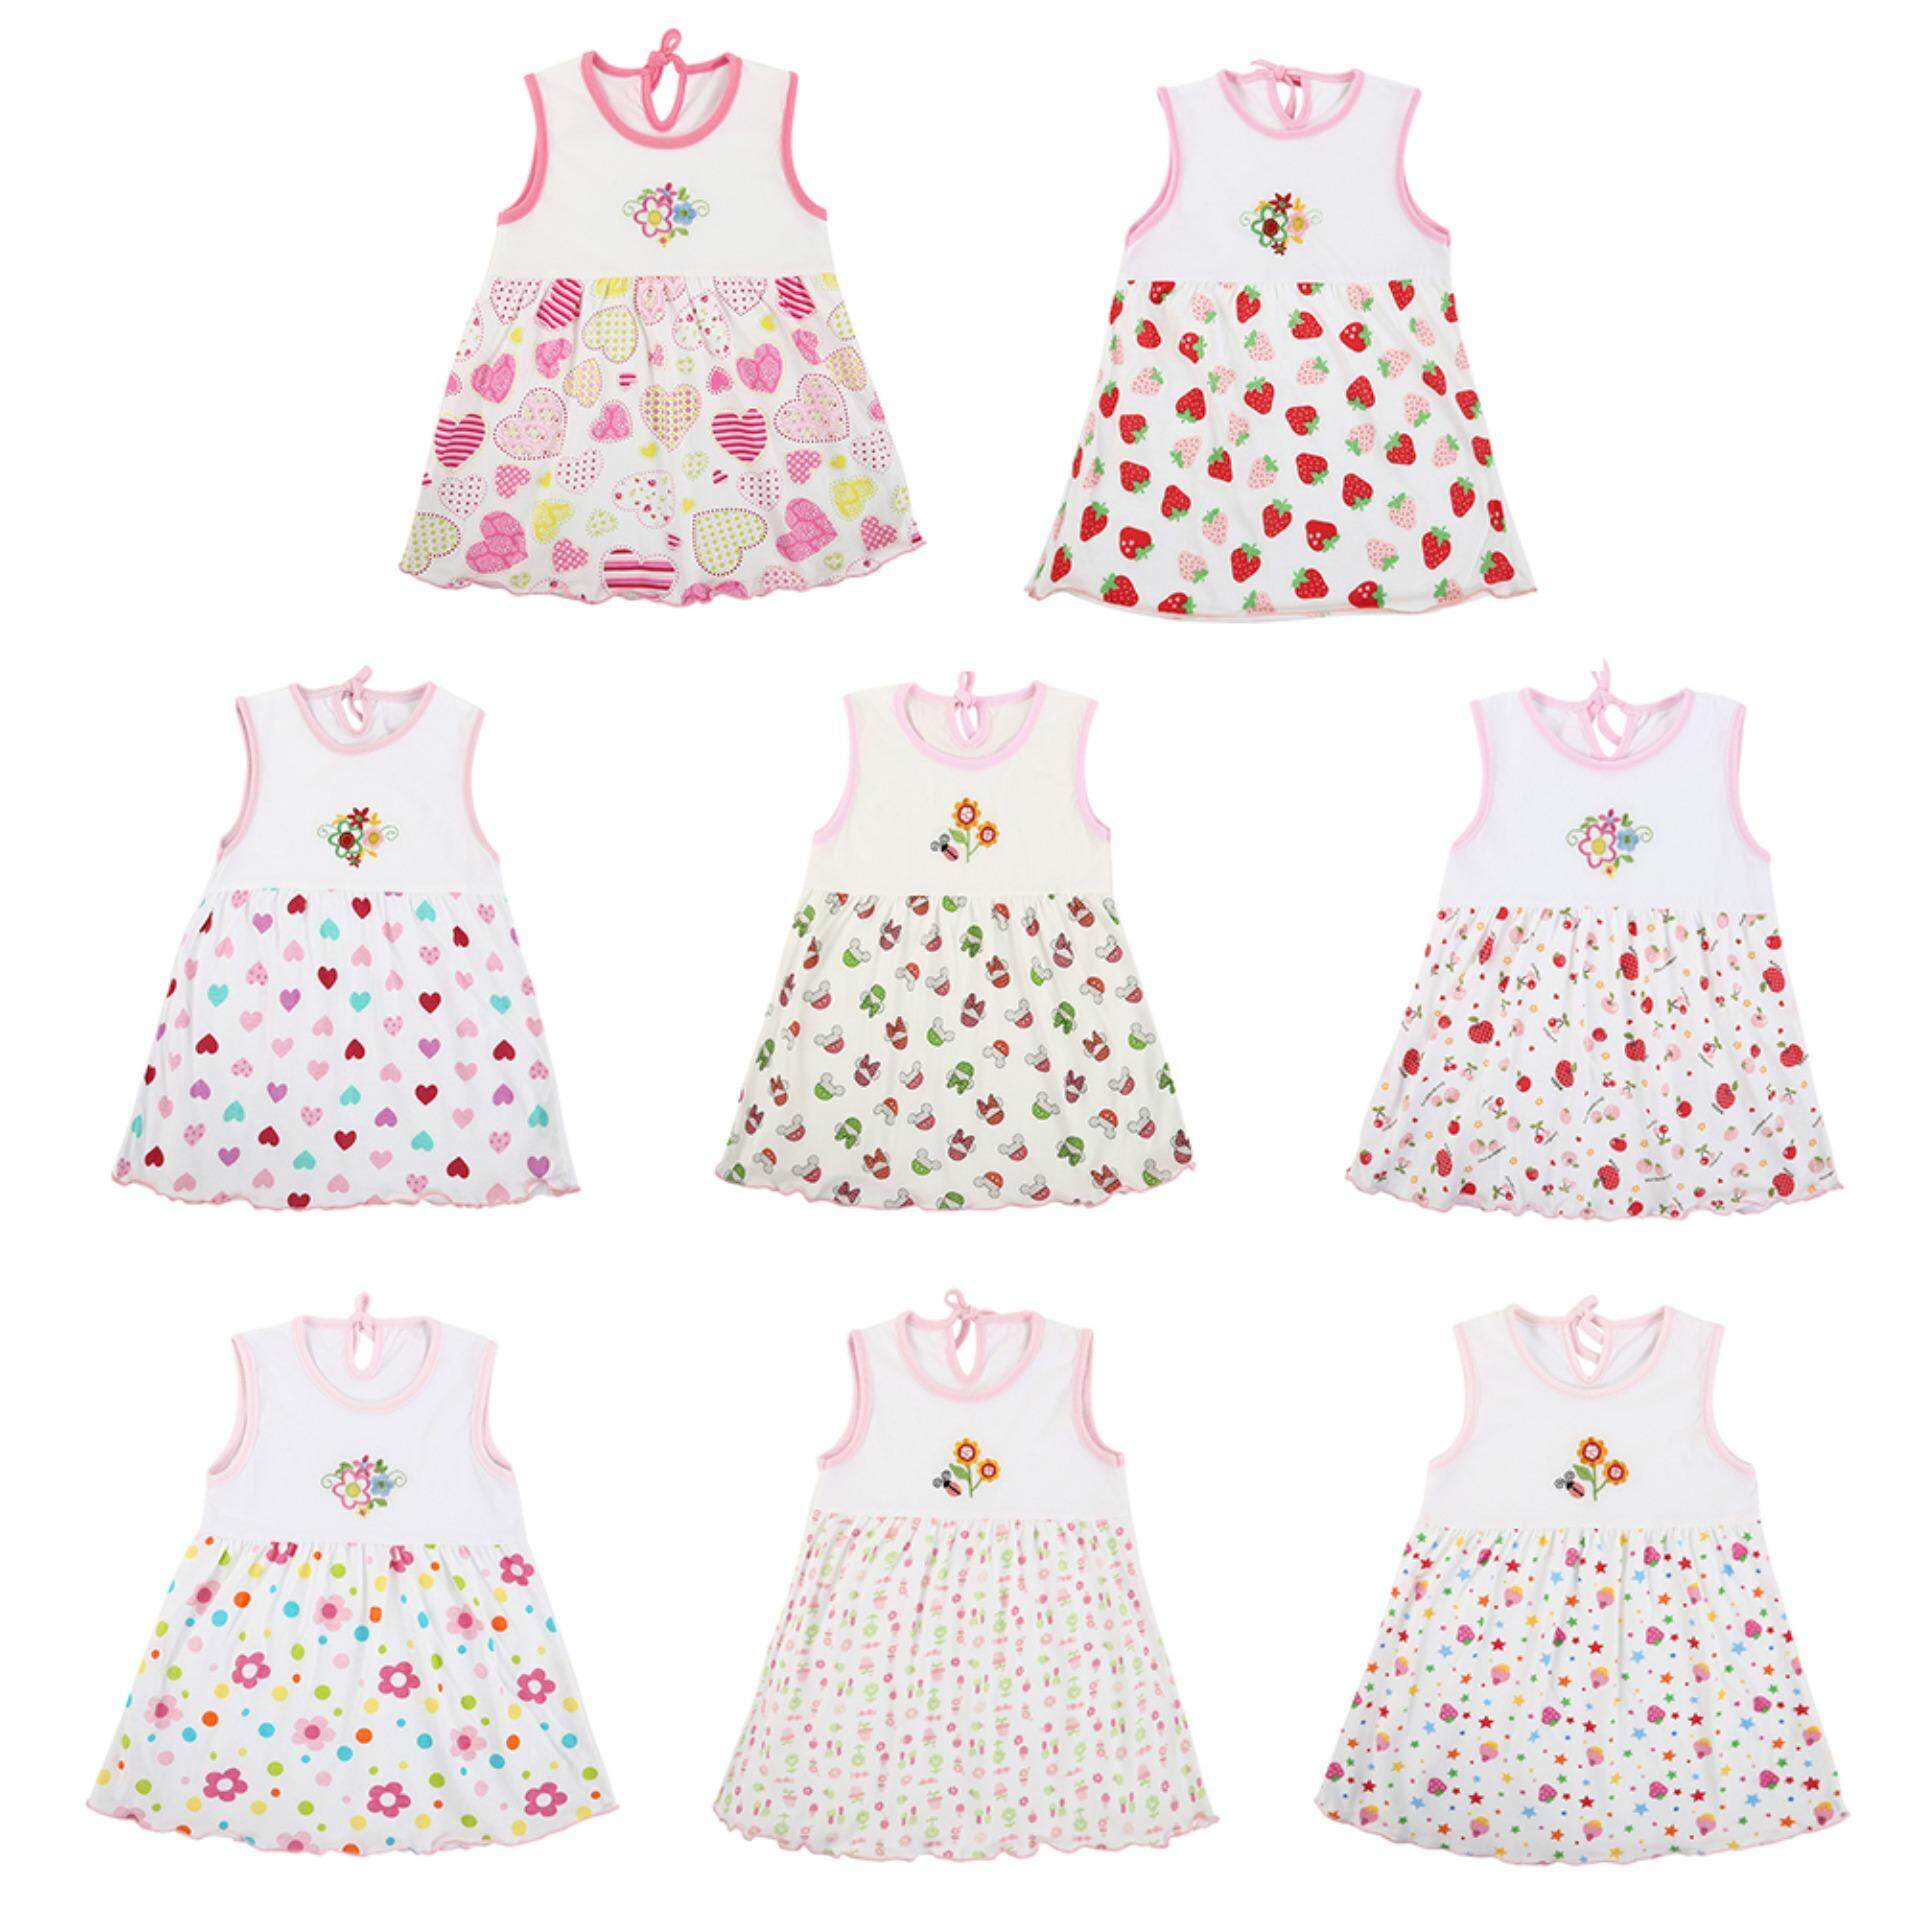 7aae09e7ae5 Baby Summer Dresses Girls O-Neck Sleeveless Cute Flowers Cotton Mini Dress